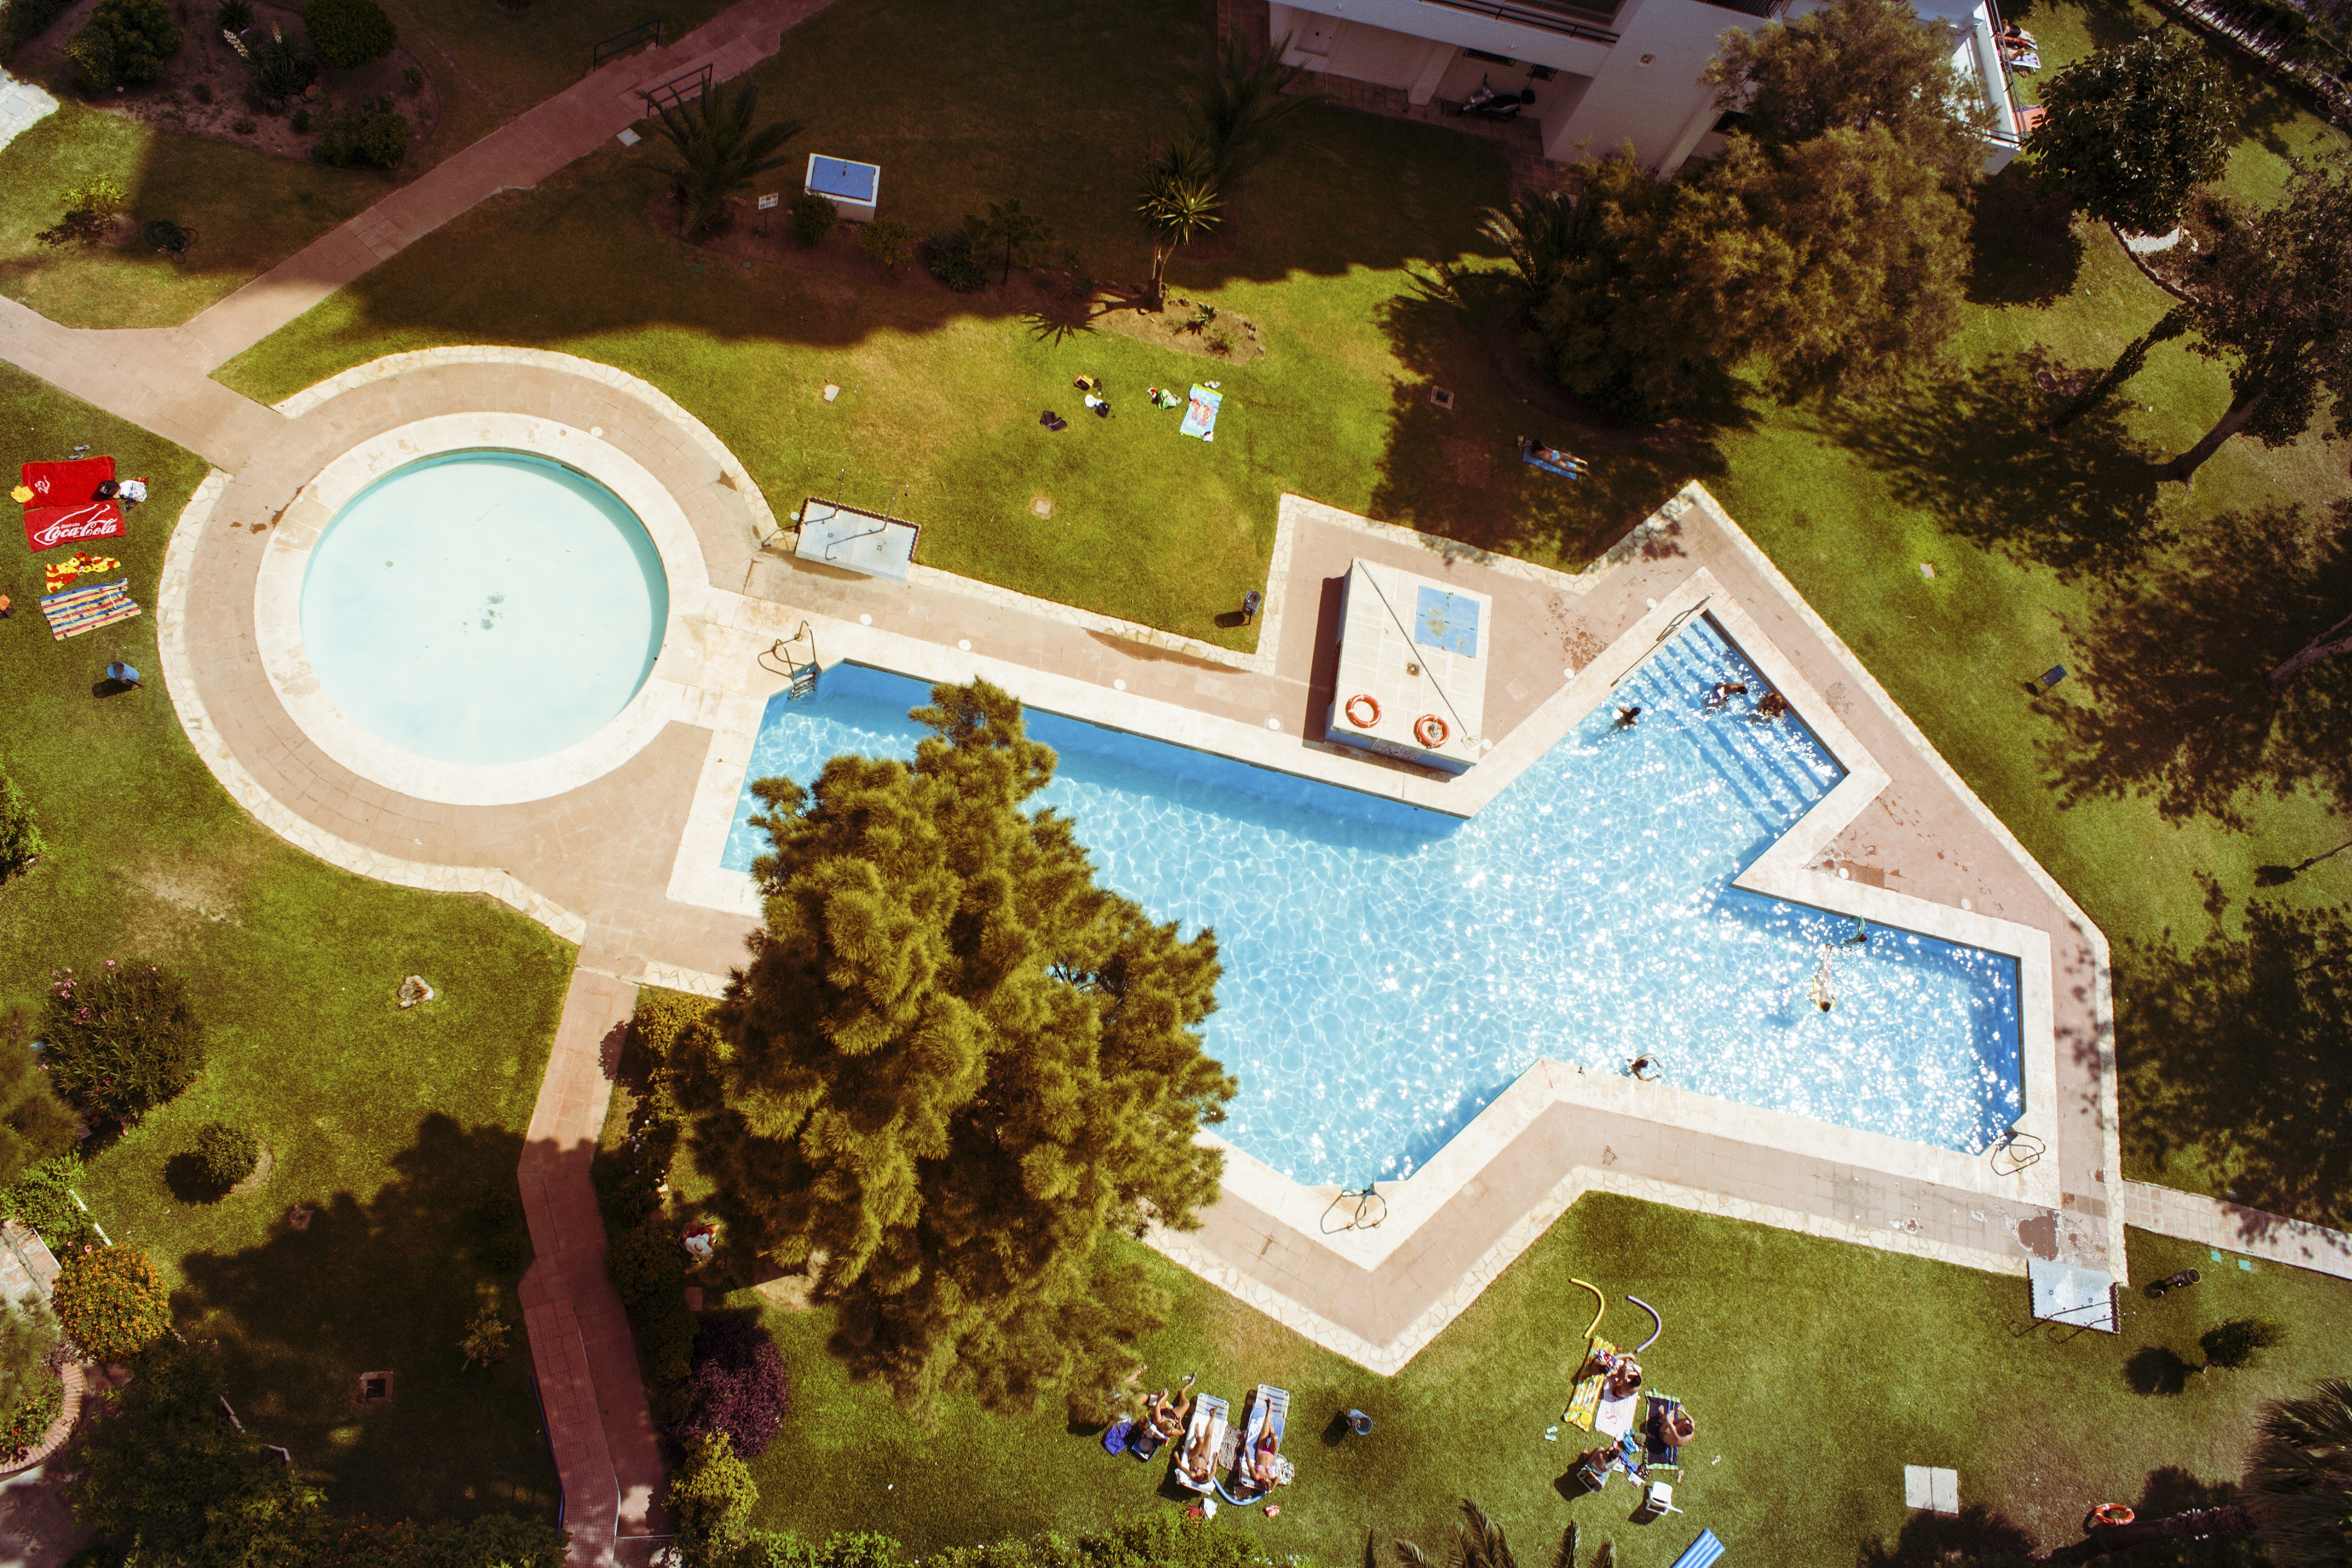 Drone view of pool in shape of X and O with swimming and sunbathing people